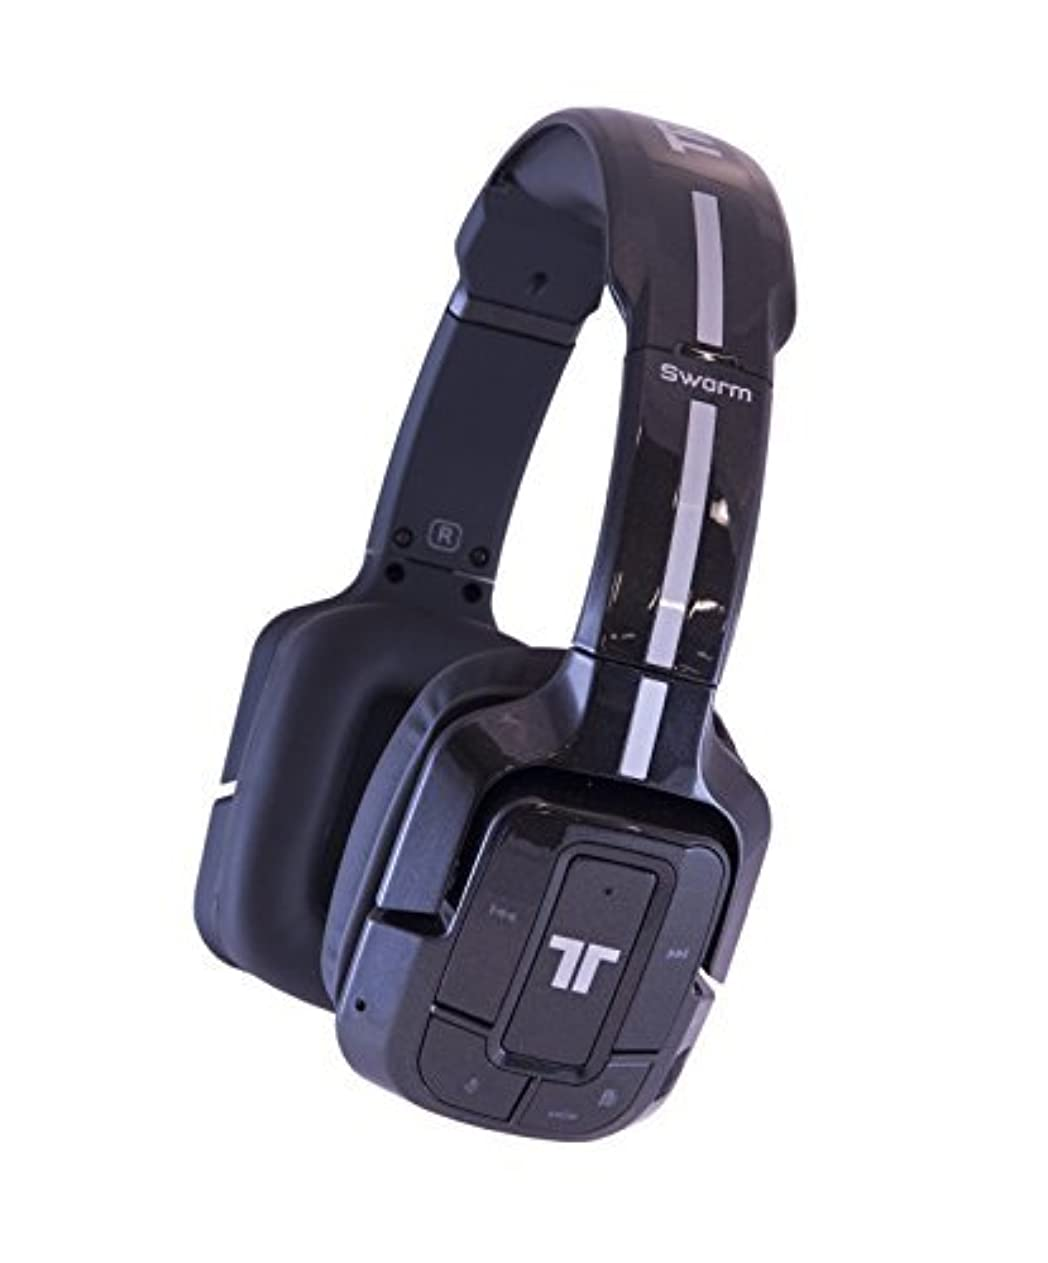 誓いハードストッキングTRITTON Swarm Wireless Mobile Headset with Bluetooth Technology for Android, iOS, Smartphones, Tablets, PC, Mac, and Gaming Consoles - Metallic Black by TRITTON [並行輸入品]